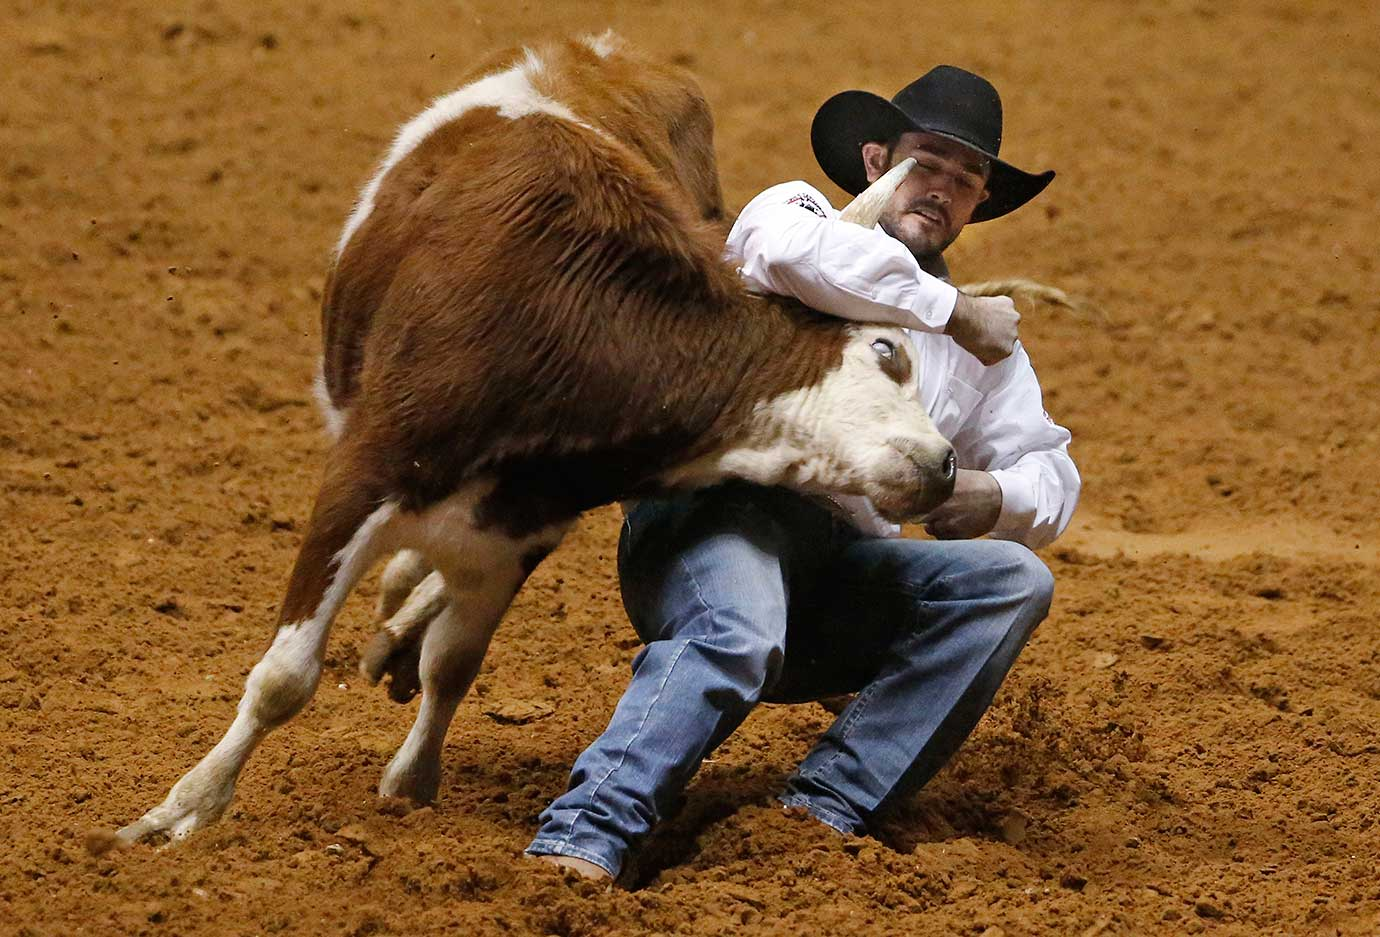 Baylor Roche scores a 4.60 seconds in steer wrestling during the Super Shootout at the Fort Worth Stock Show Rodeo in Texas.